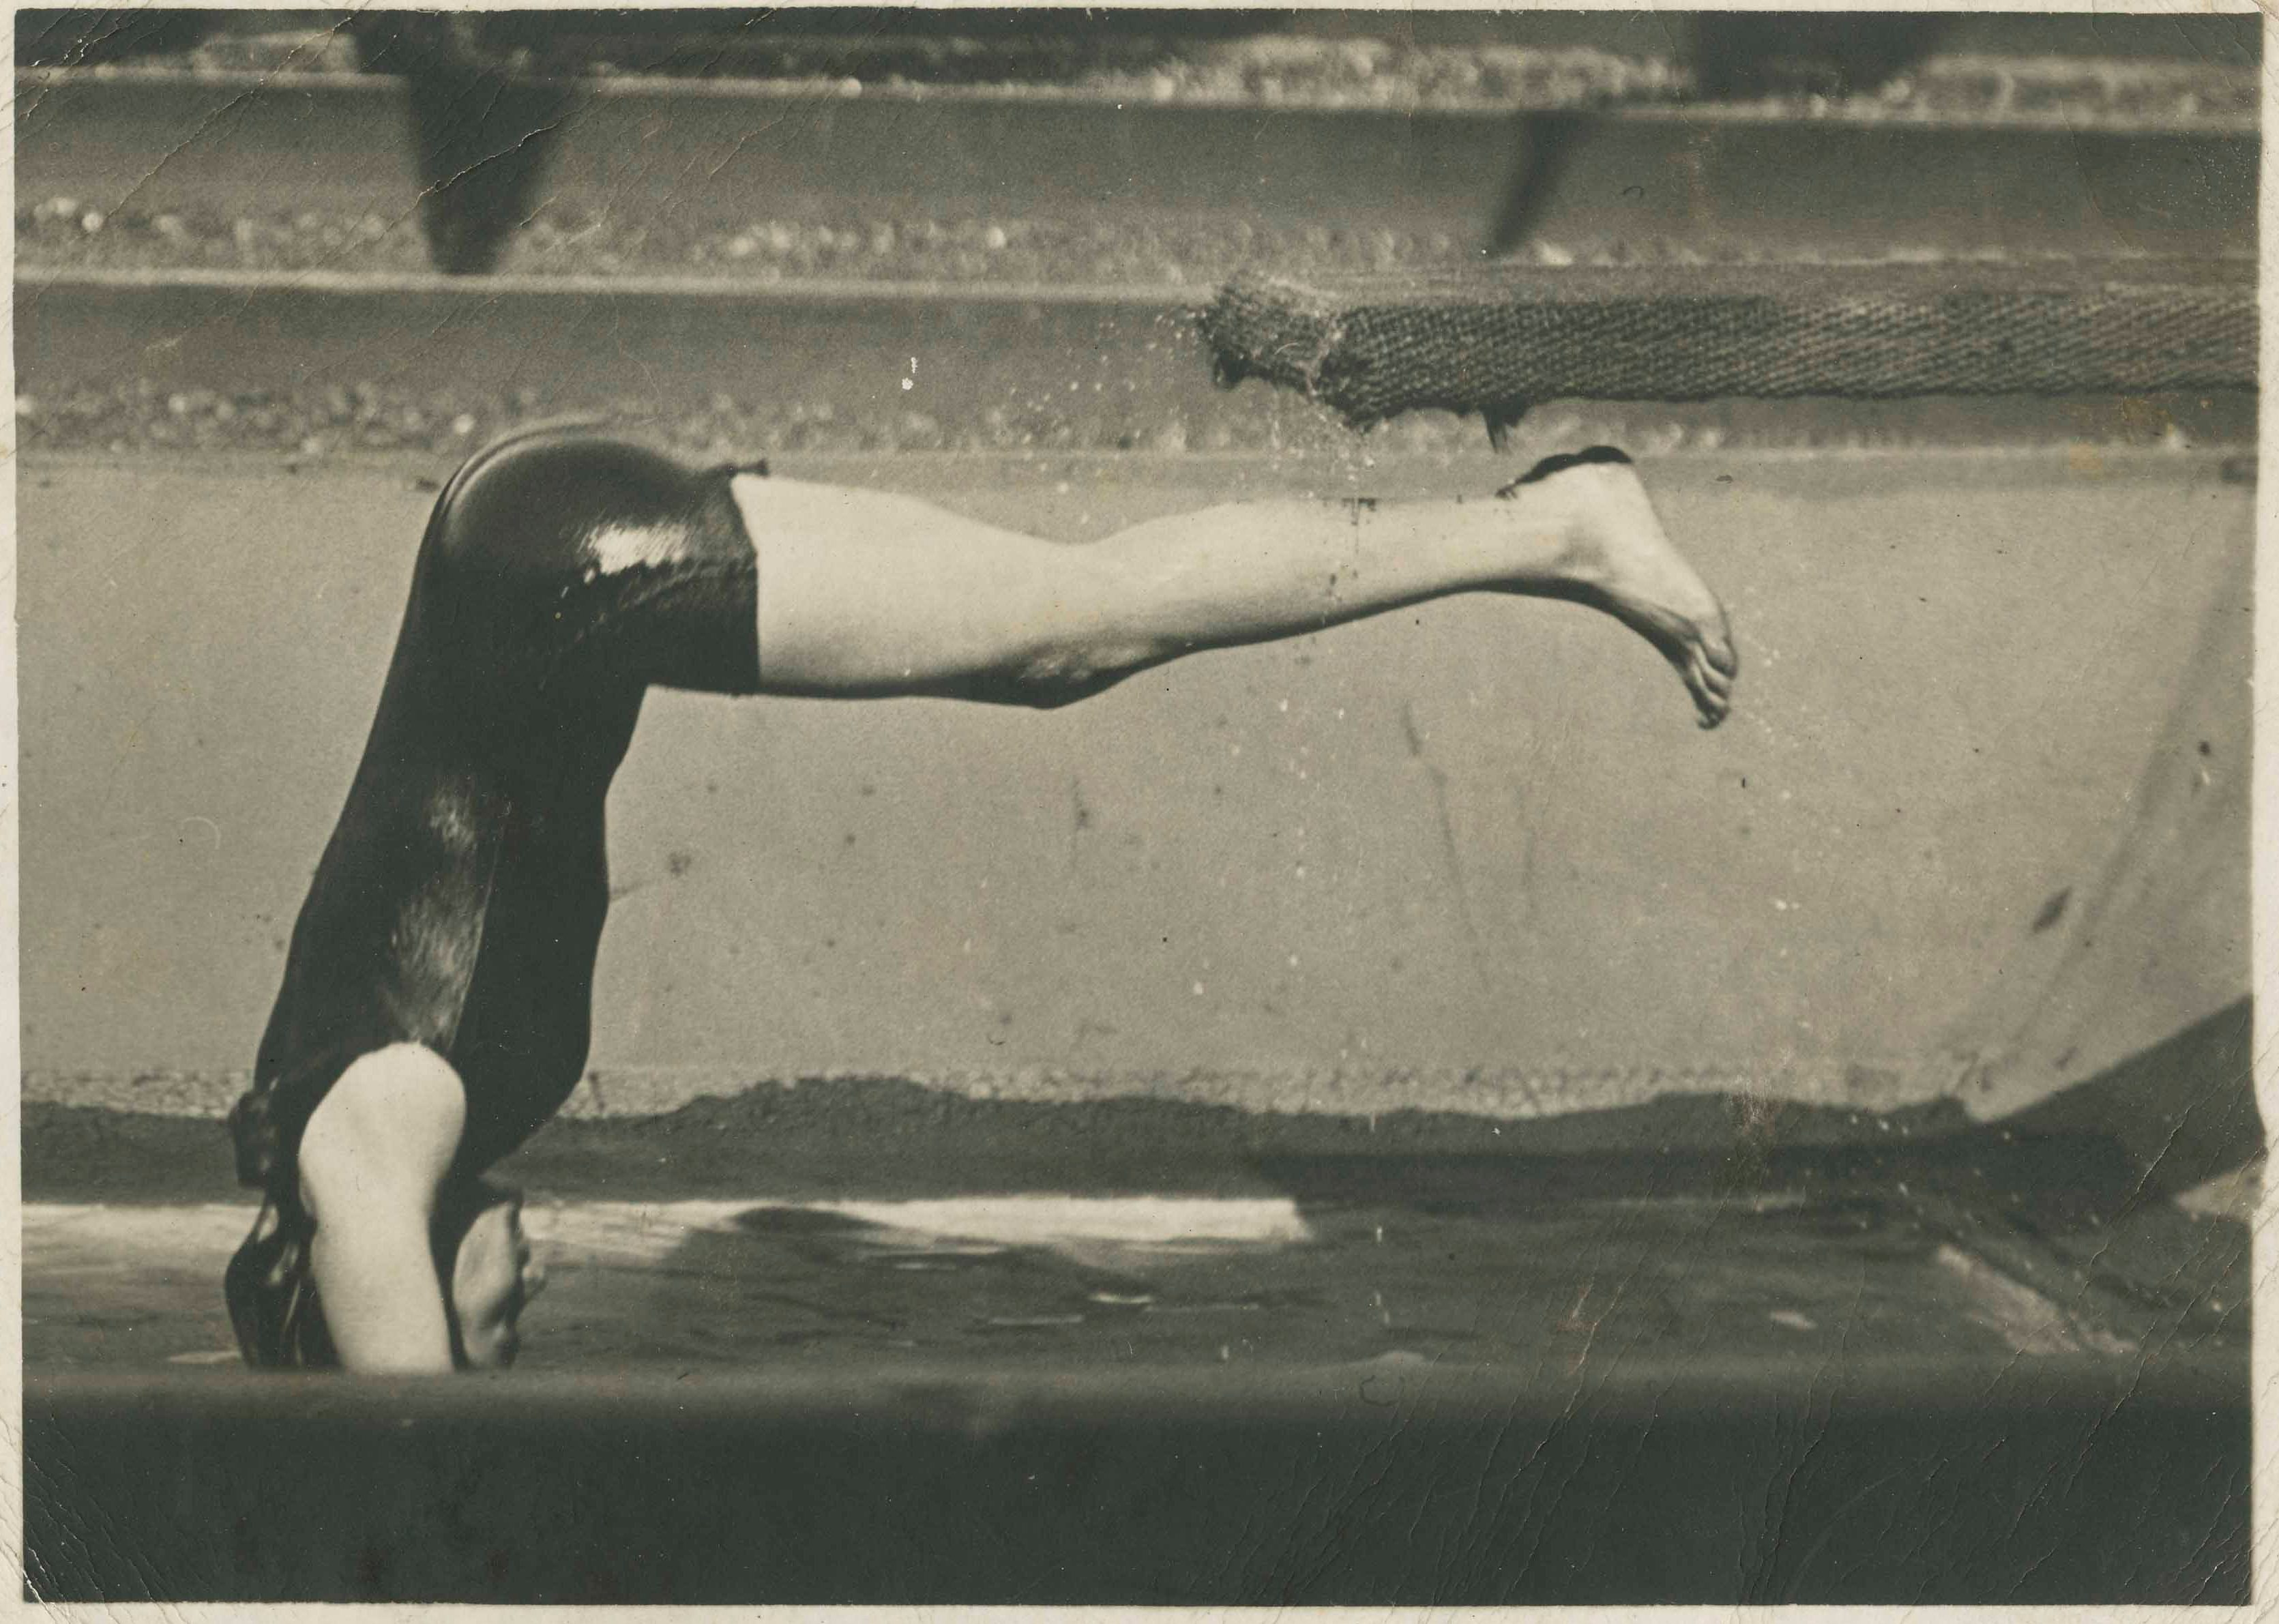 A woman (probably Beatrice Kerr) diving into water